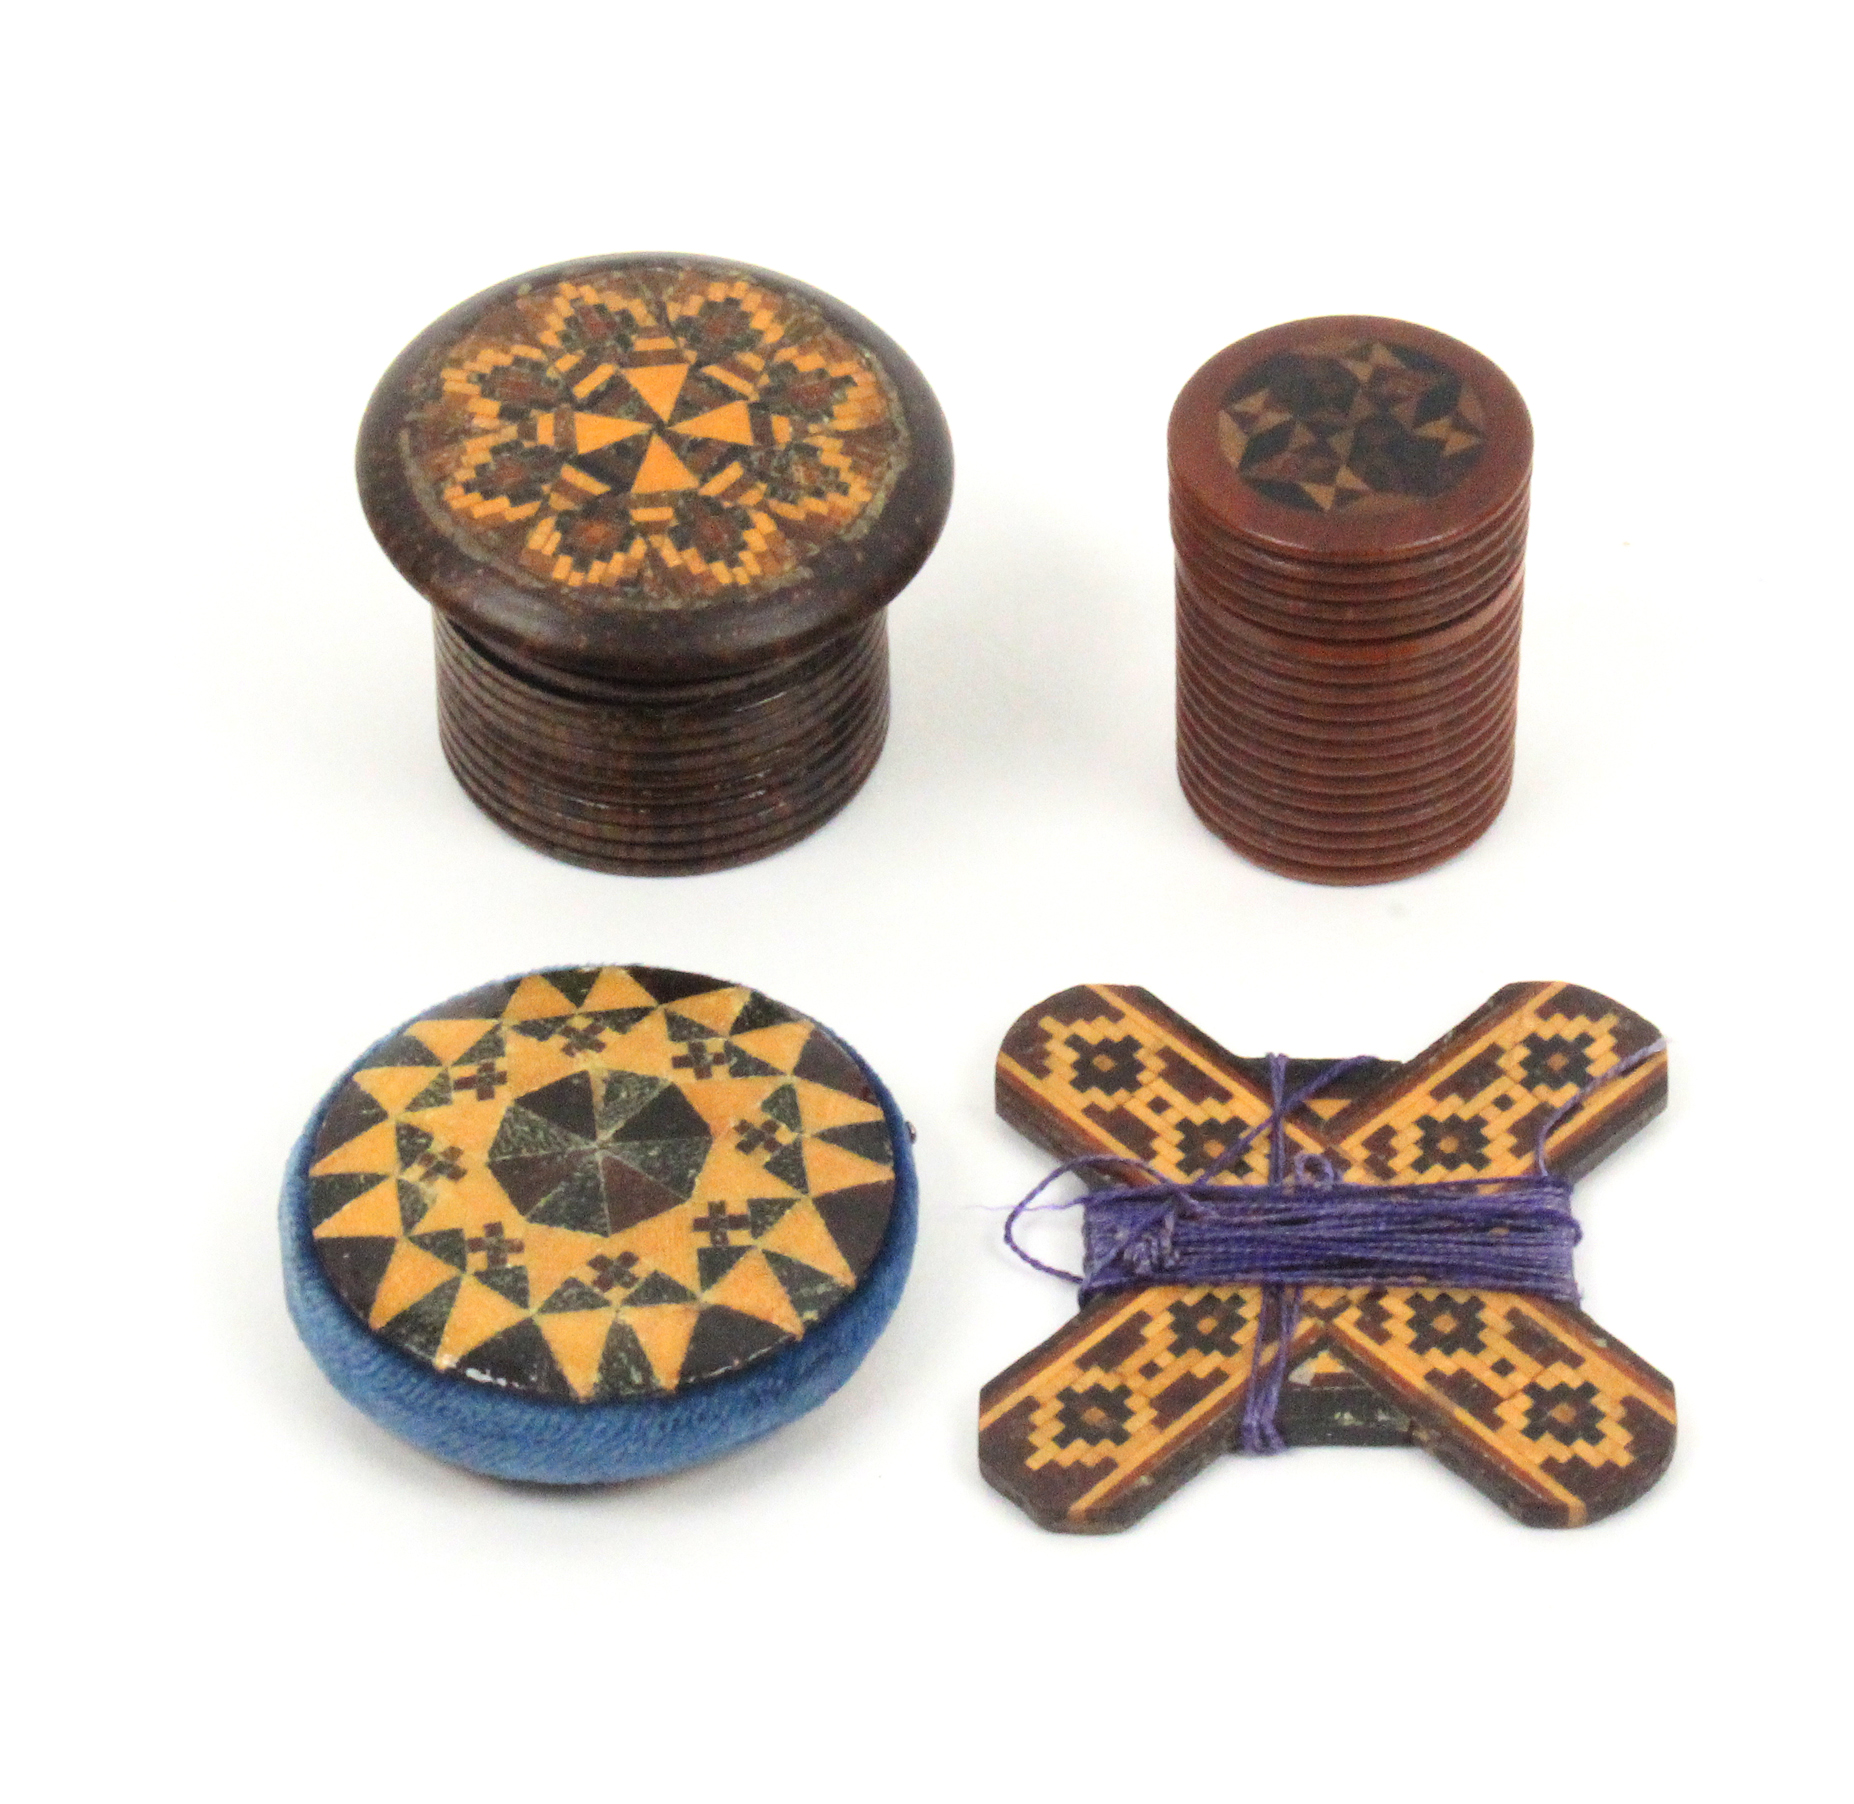 Lot 2 - Tunbridge ware - four pieces comprising a disc form stick ware pin cushion, 4cm, a mosaic cross form